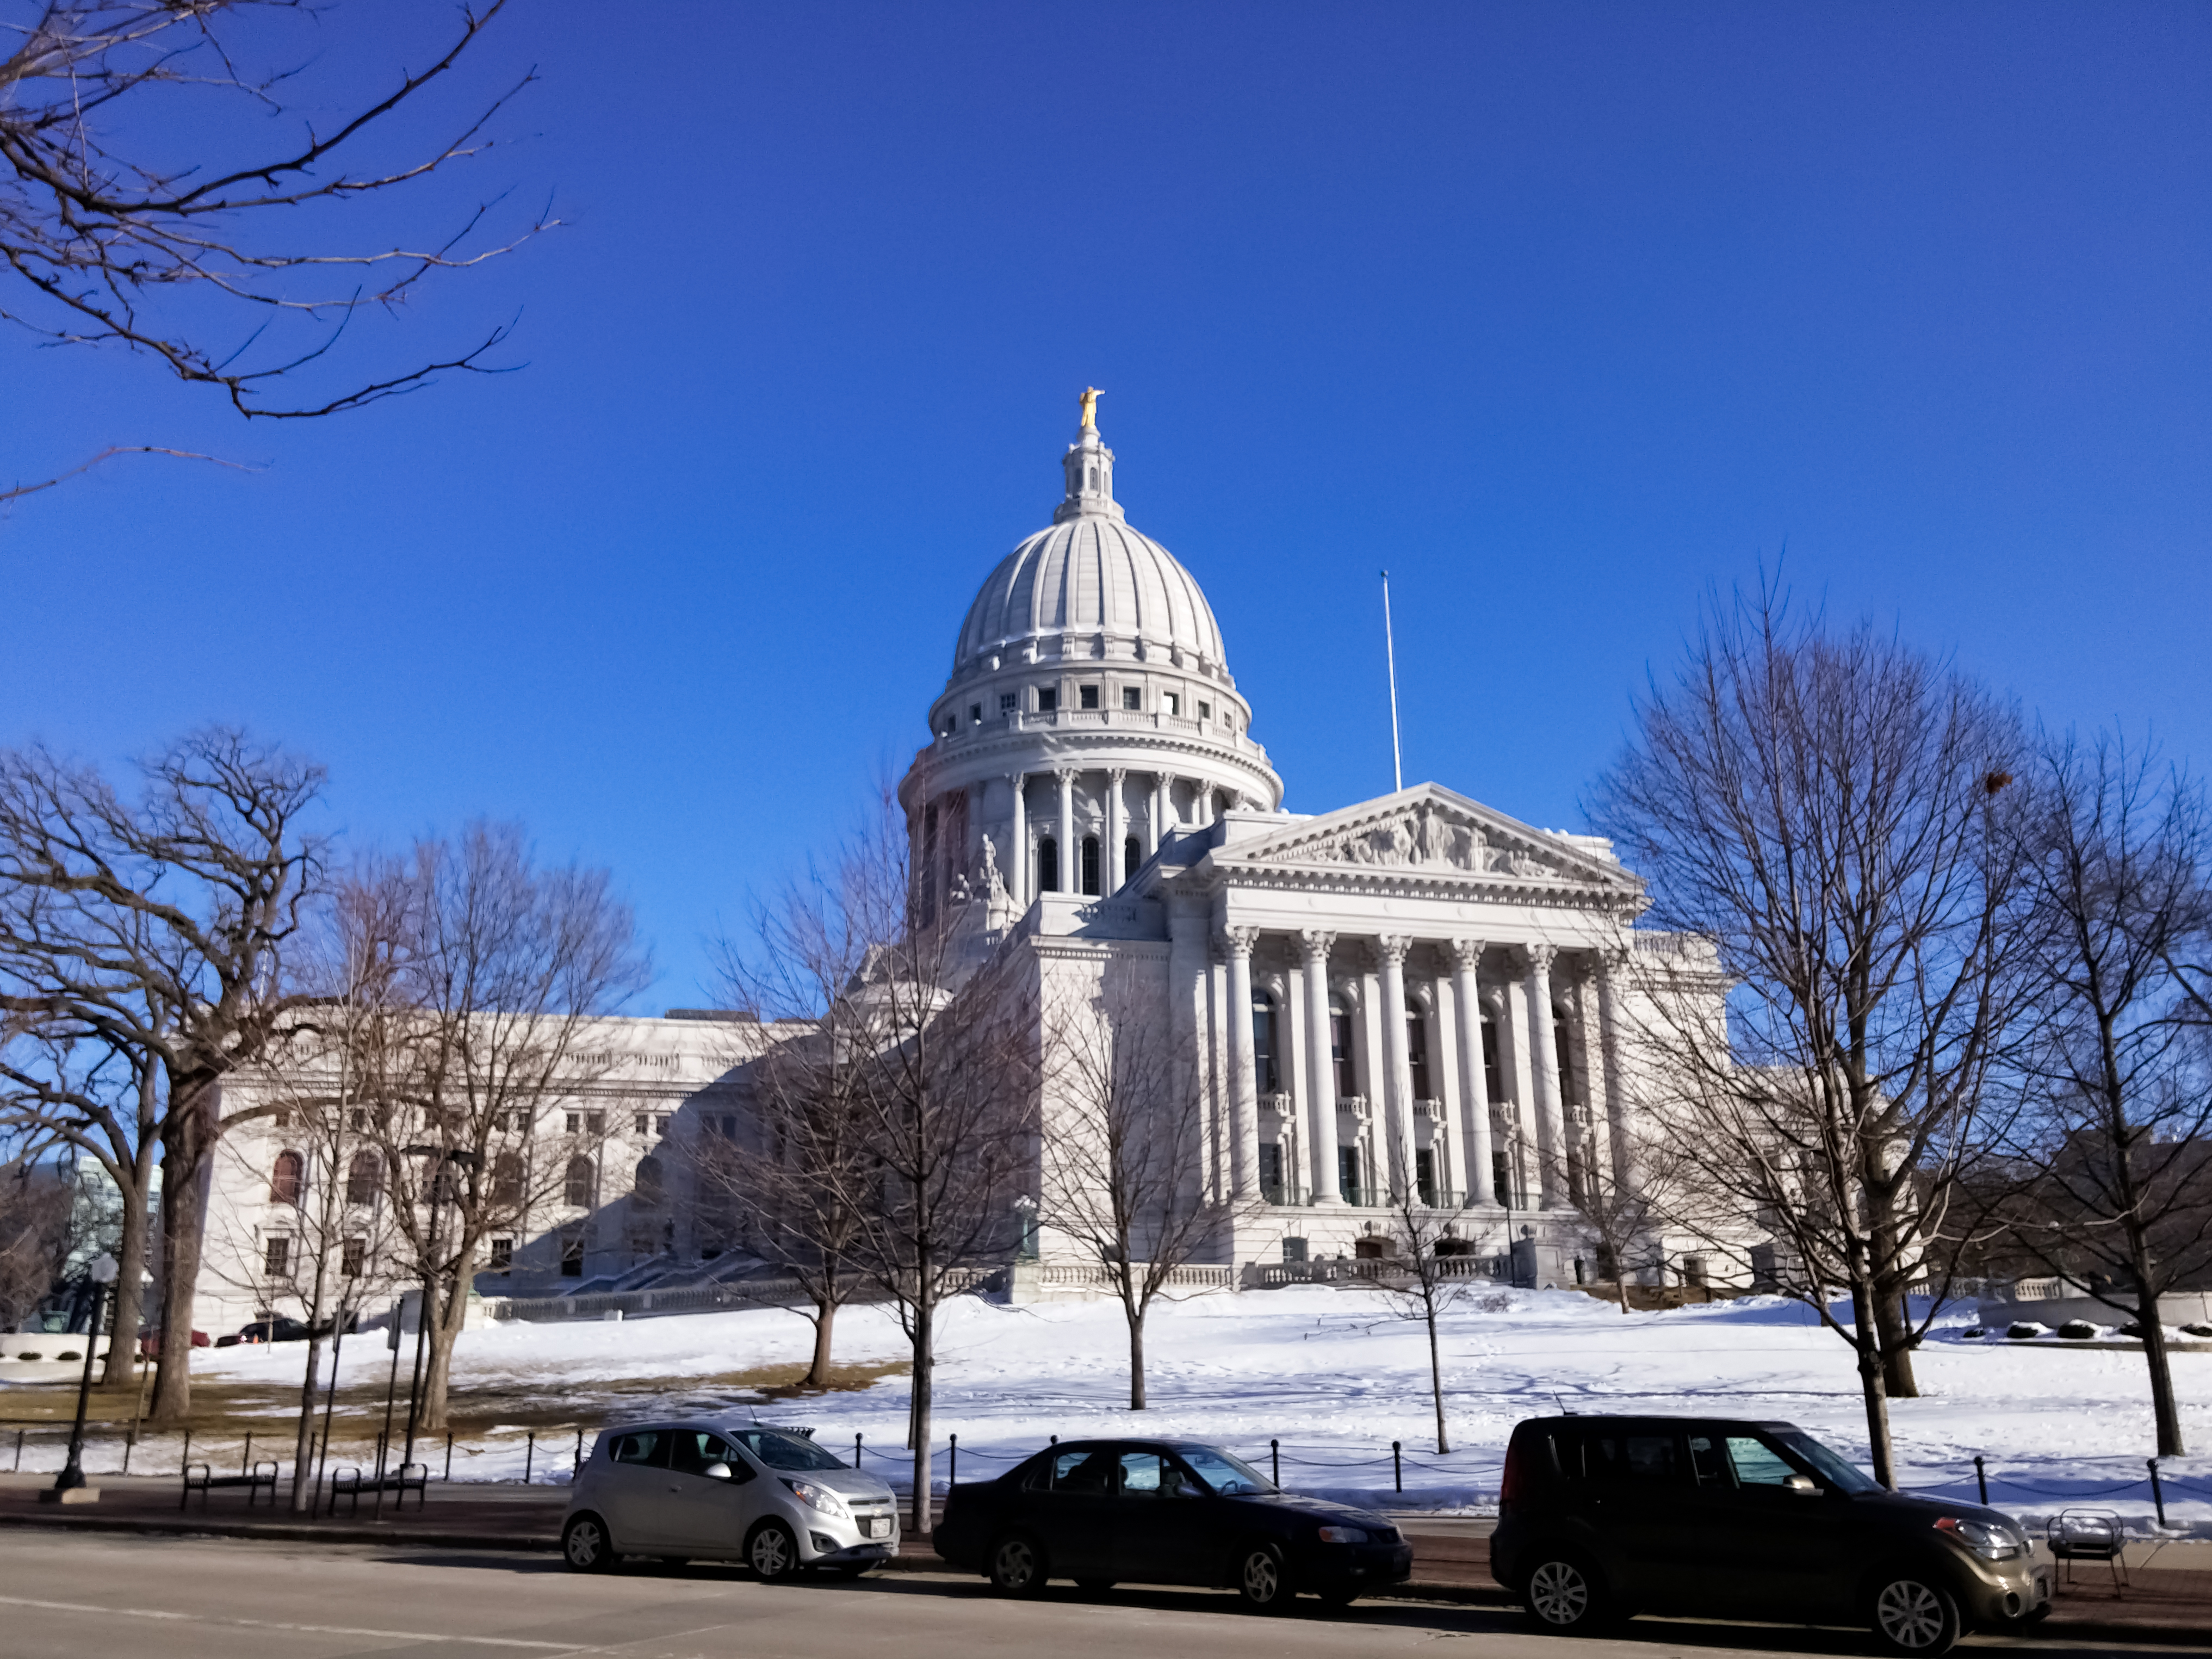 The Wisconsin State Capitol, in Madison, Wisconsin, United States